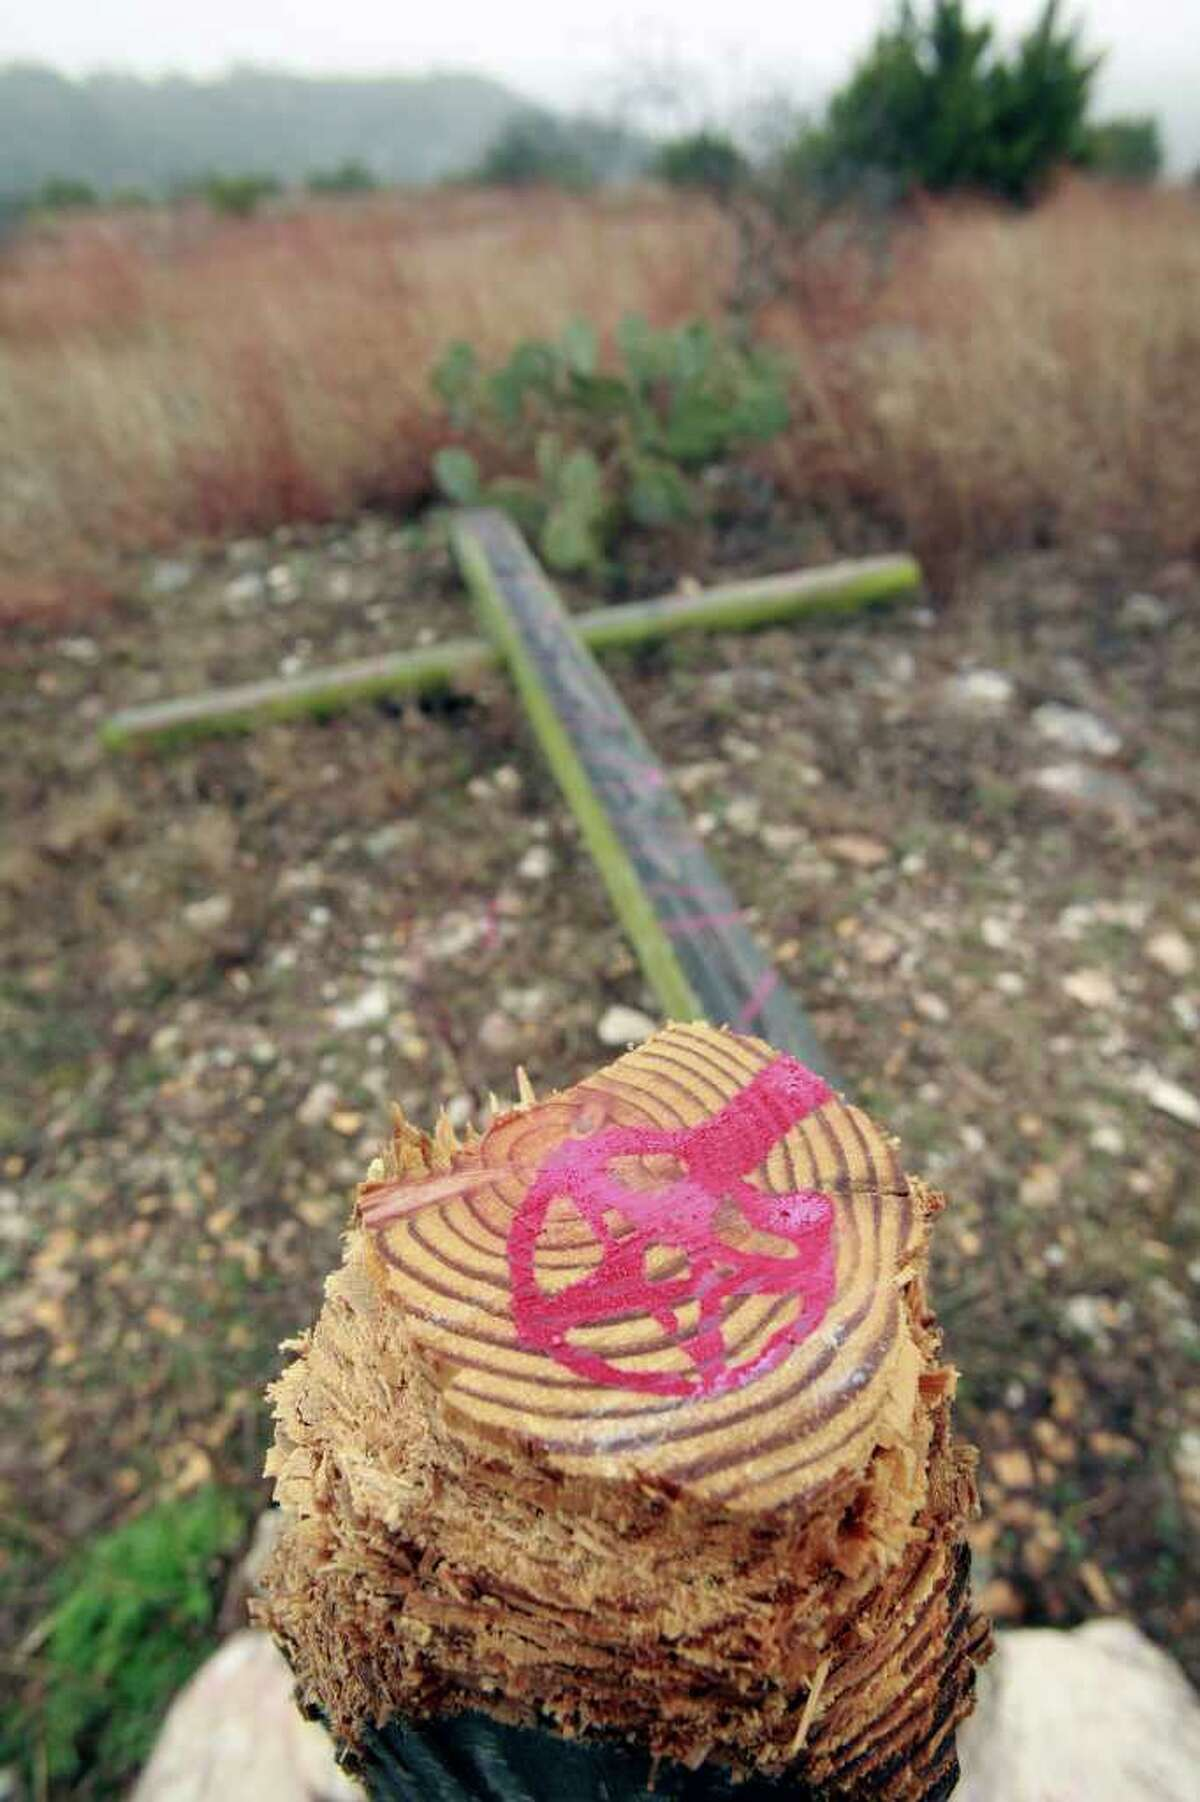 Red pentagrams were painted on the stumps of three wooden crosses cut down in Boerne. The vandalism was discovered Feb 13.